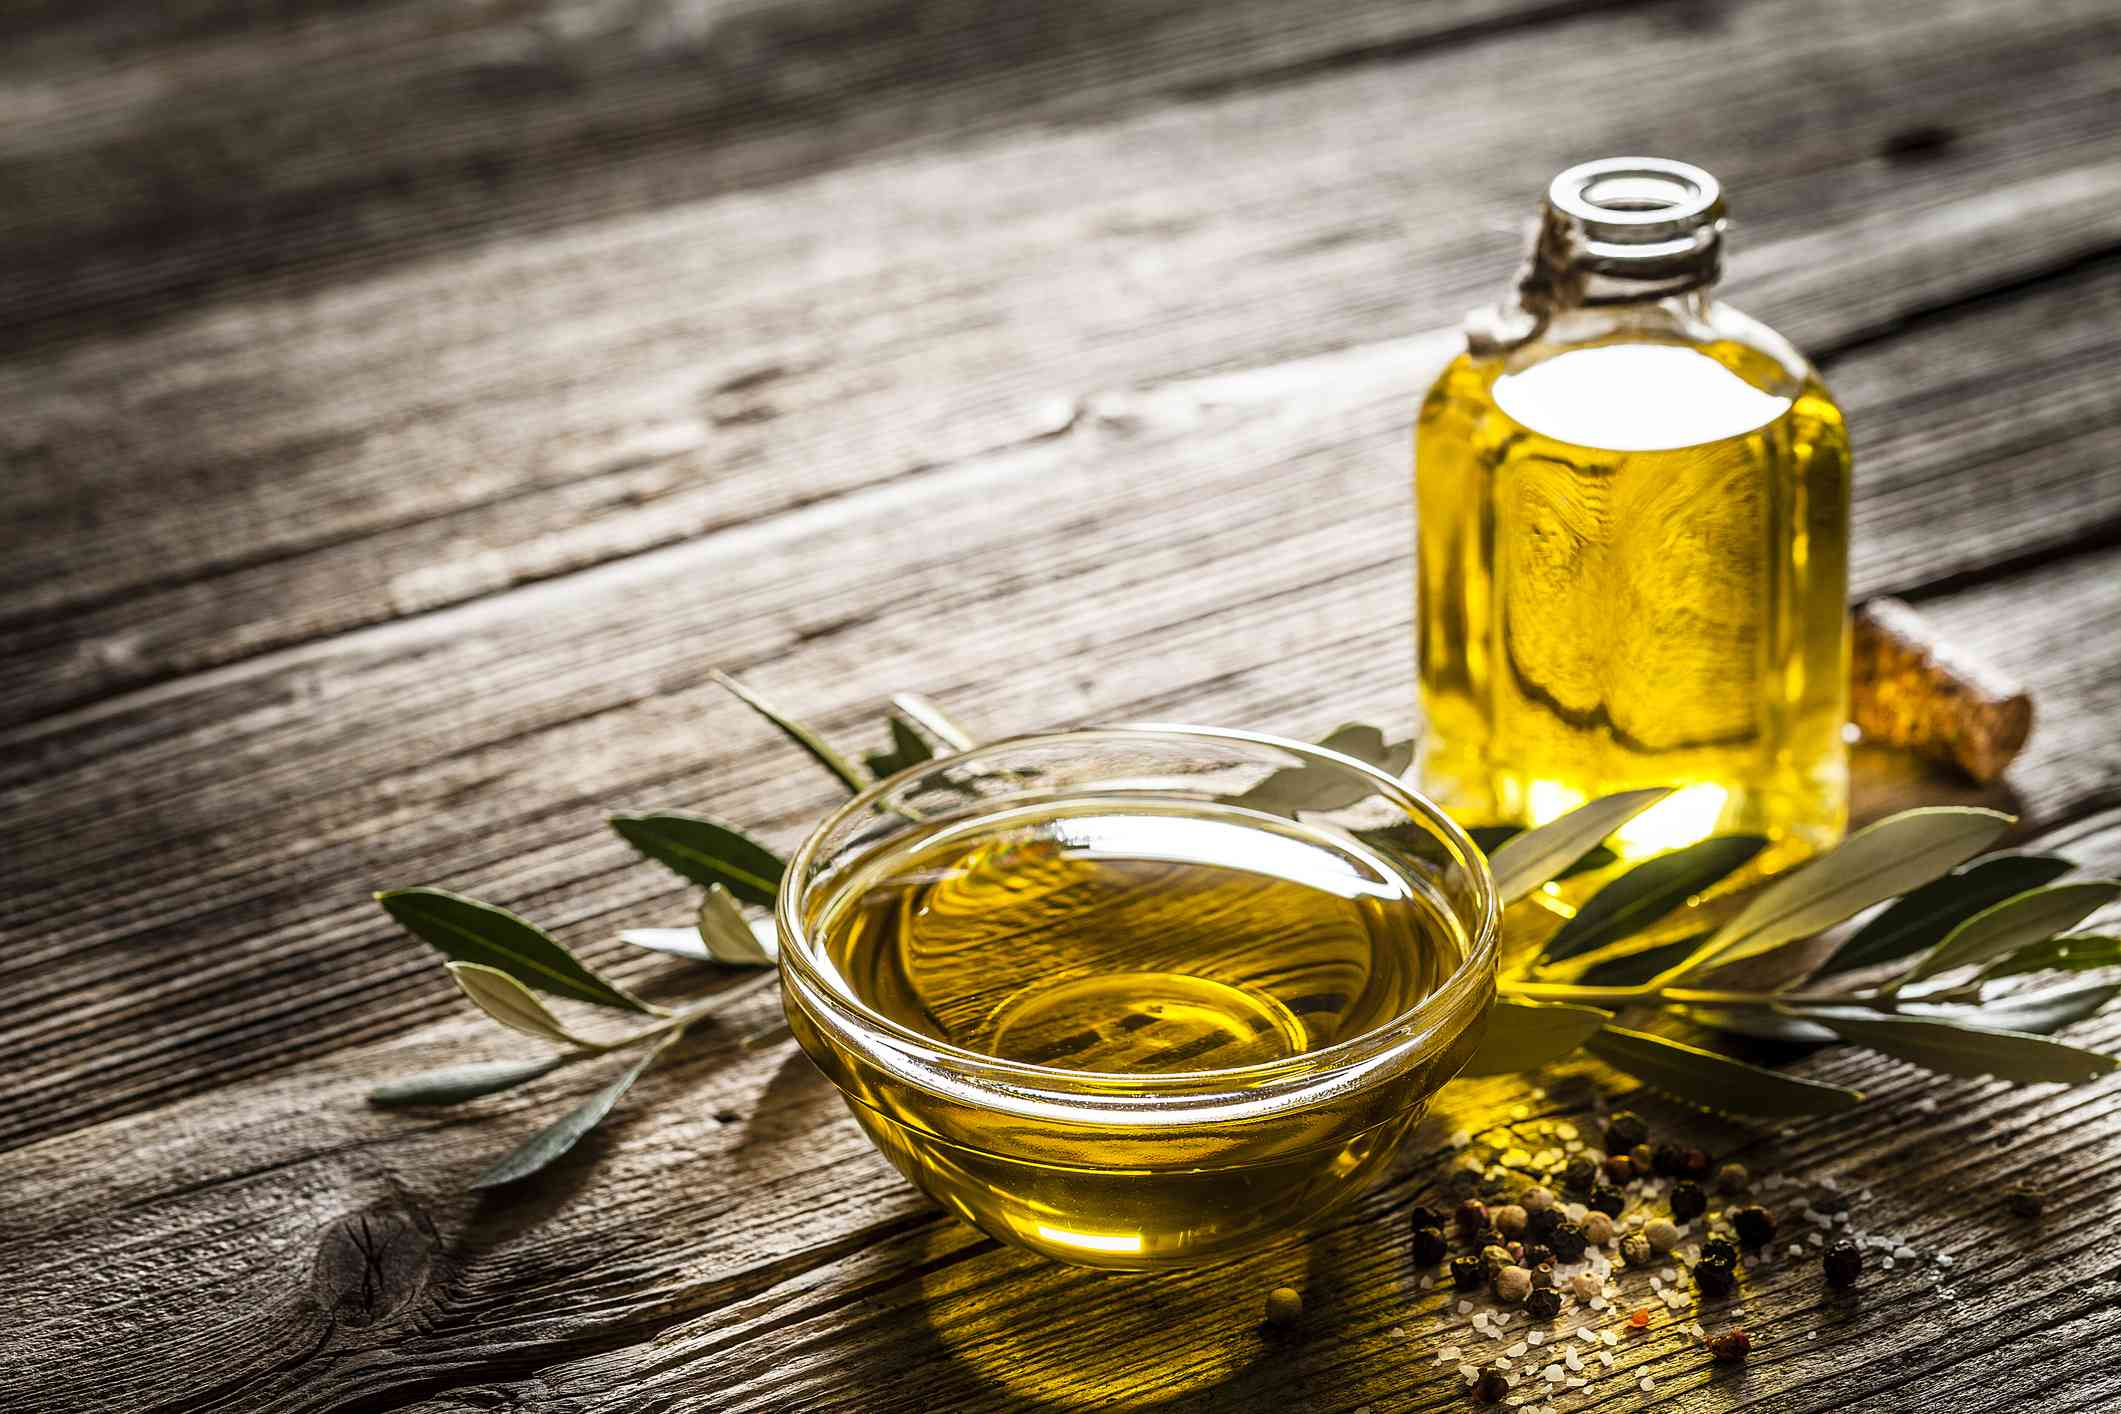 A glass dish full of olive oil beside a bottle on a rustic table.